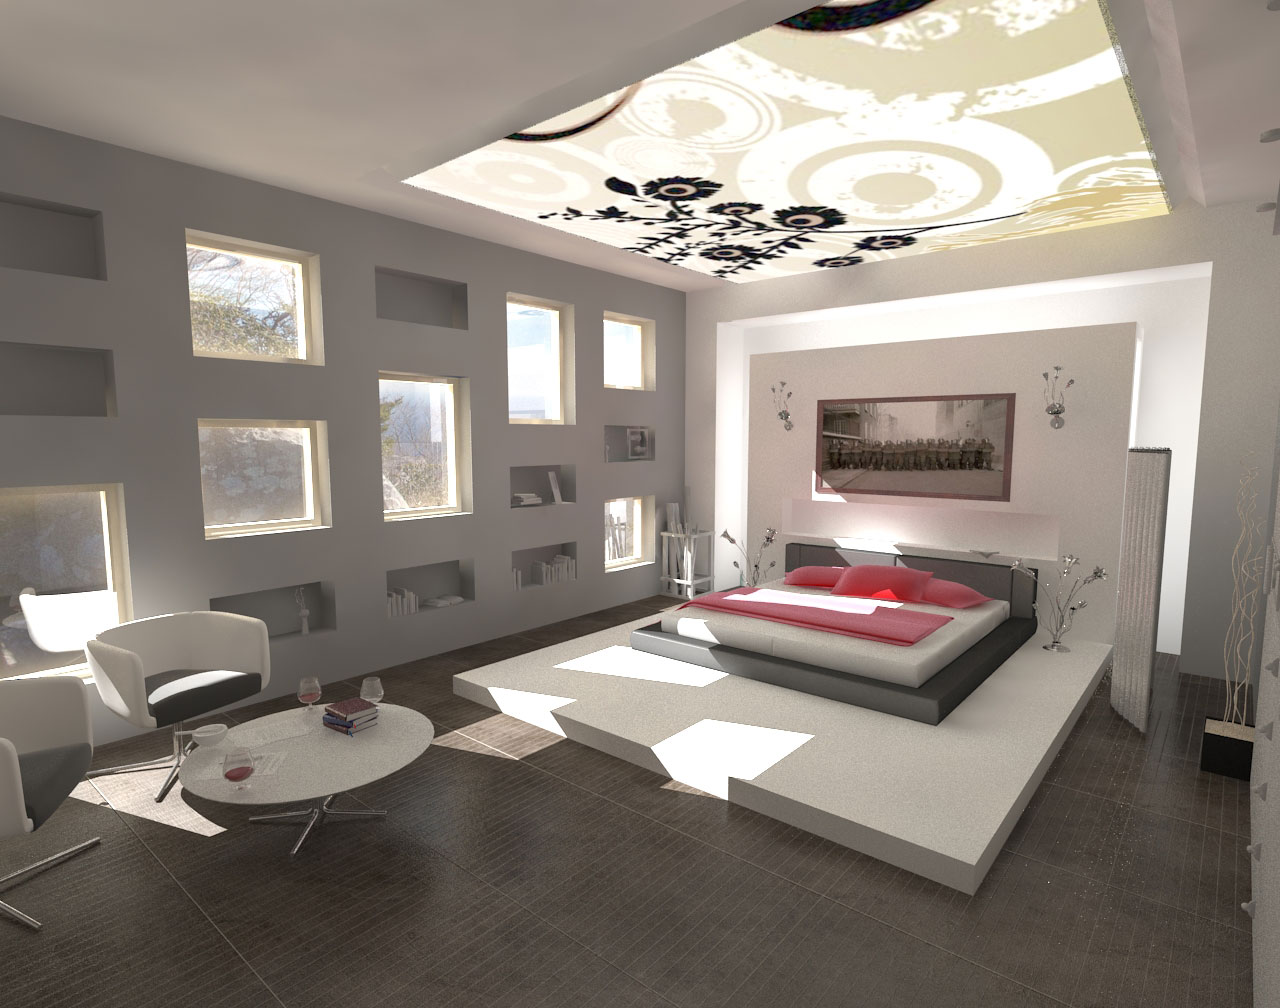 Decorations minimalist design modern bedroom interior Minimalist design